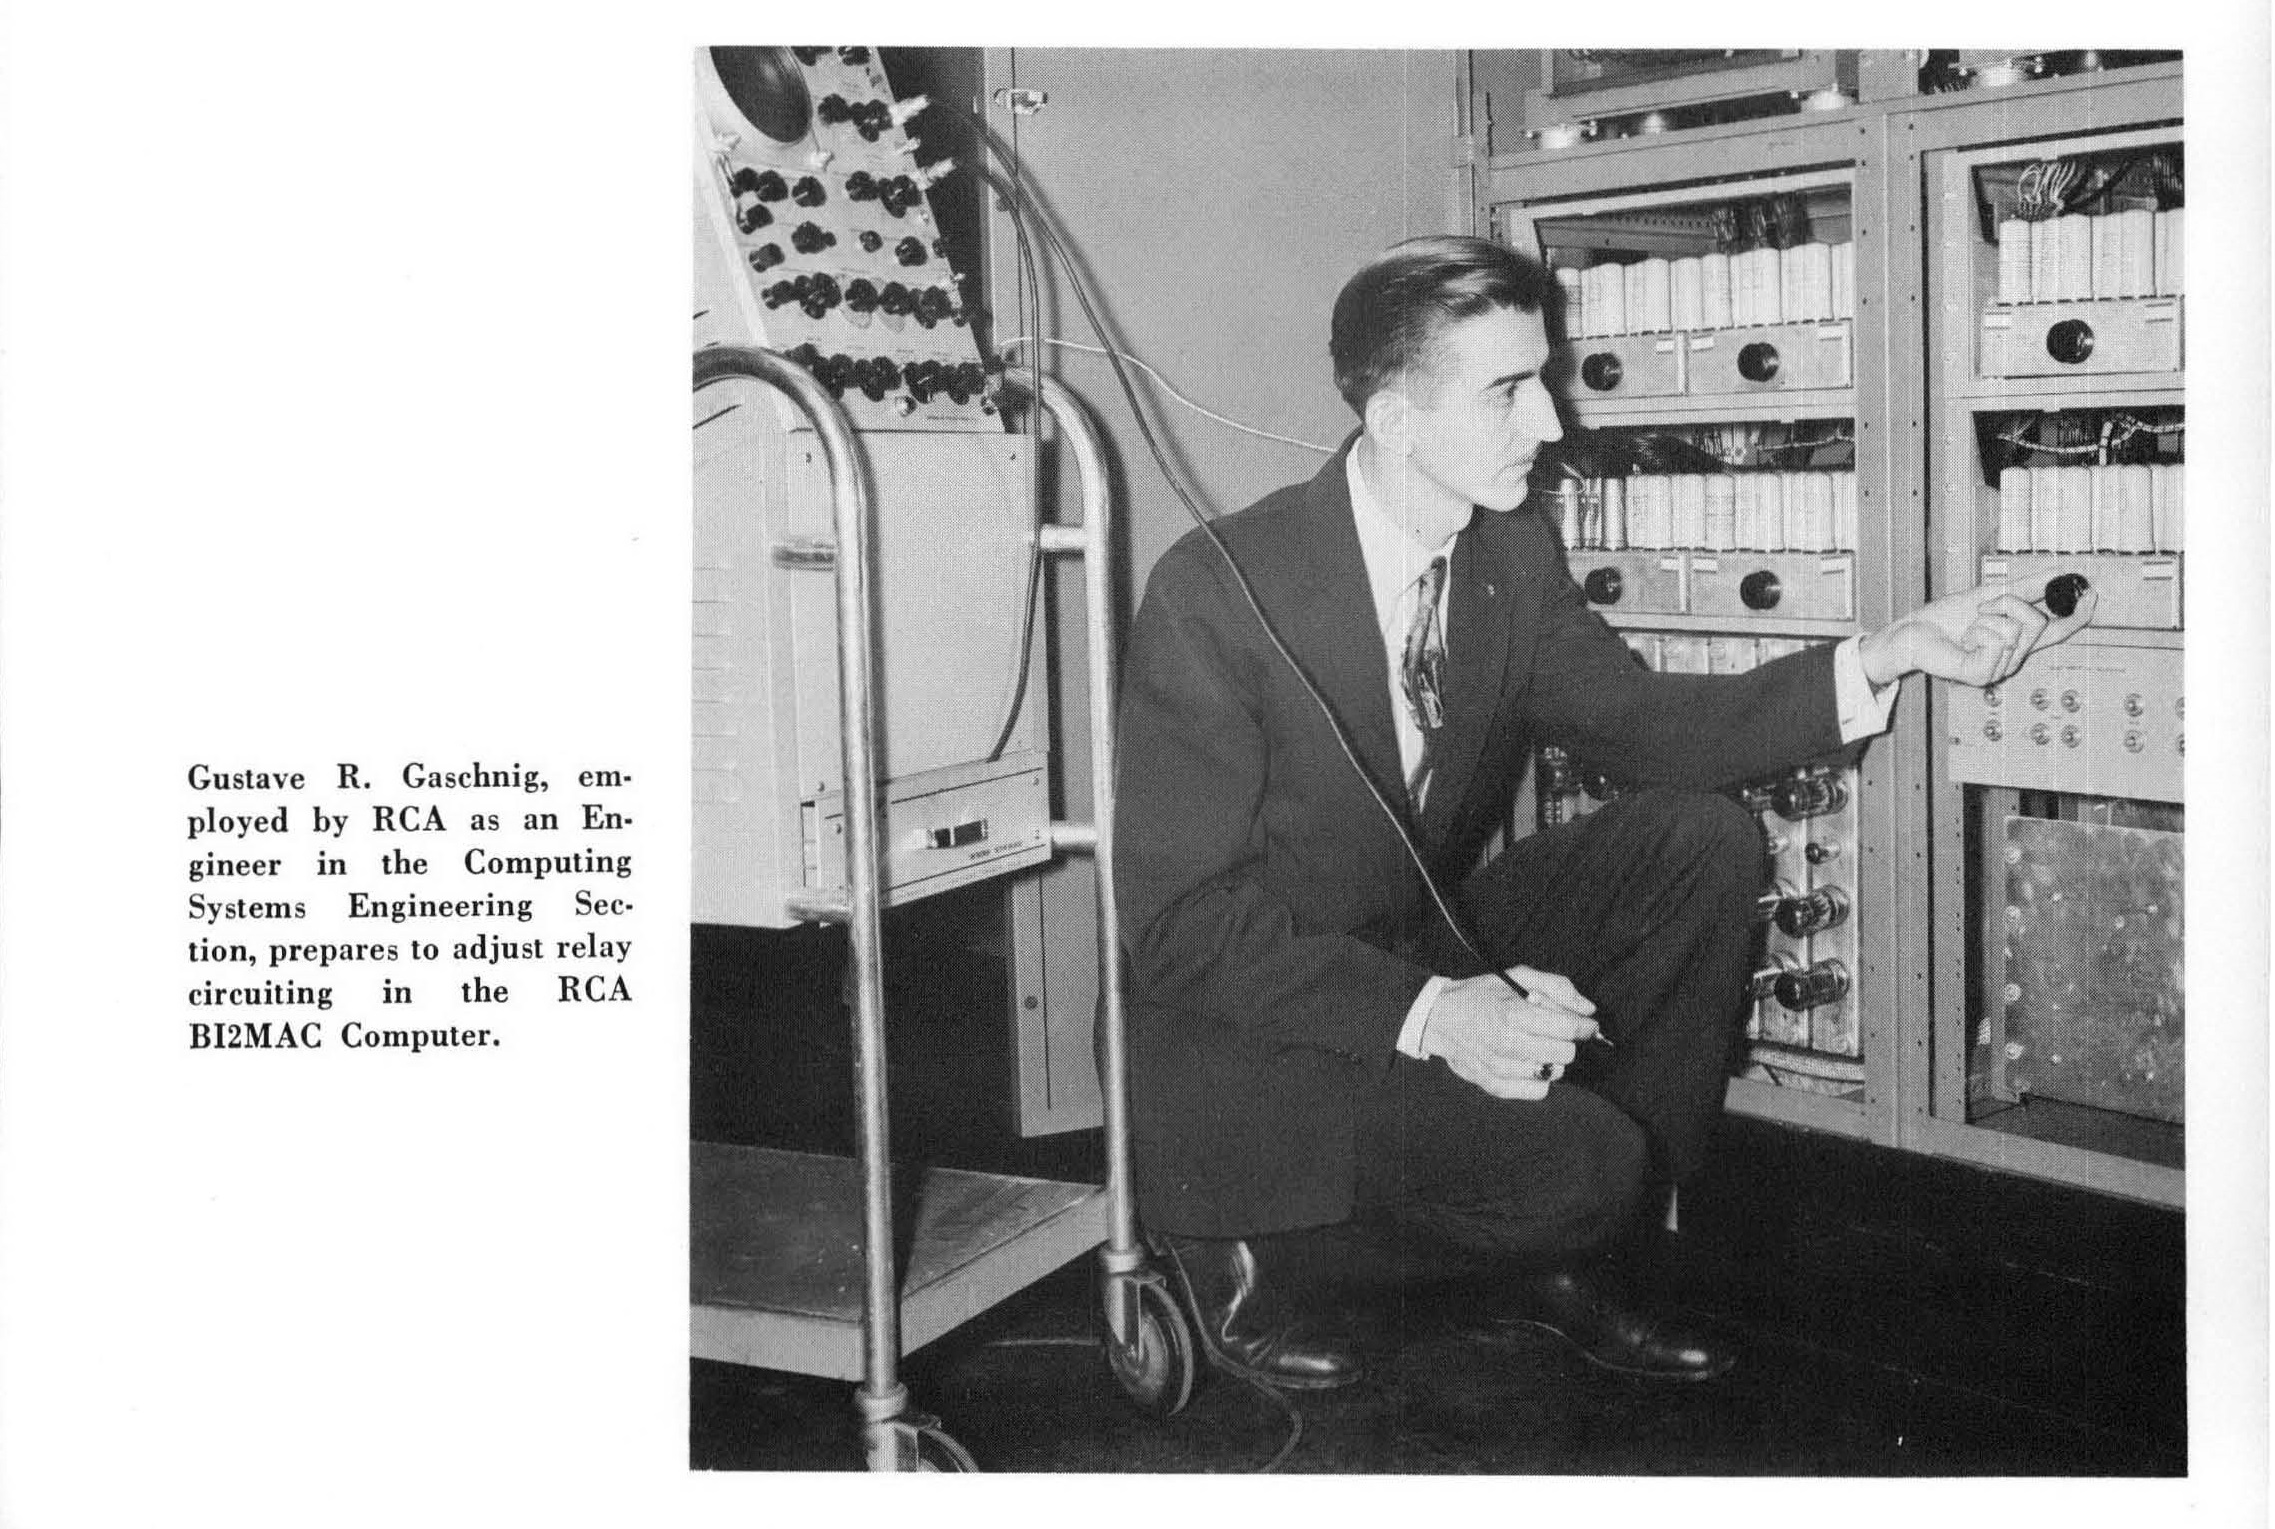 A man kneels beside a computer from the 1950s